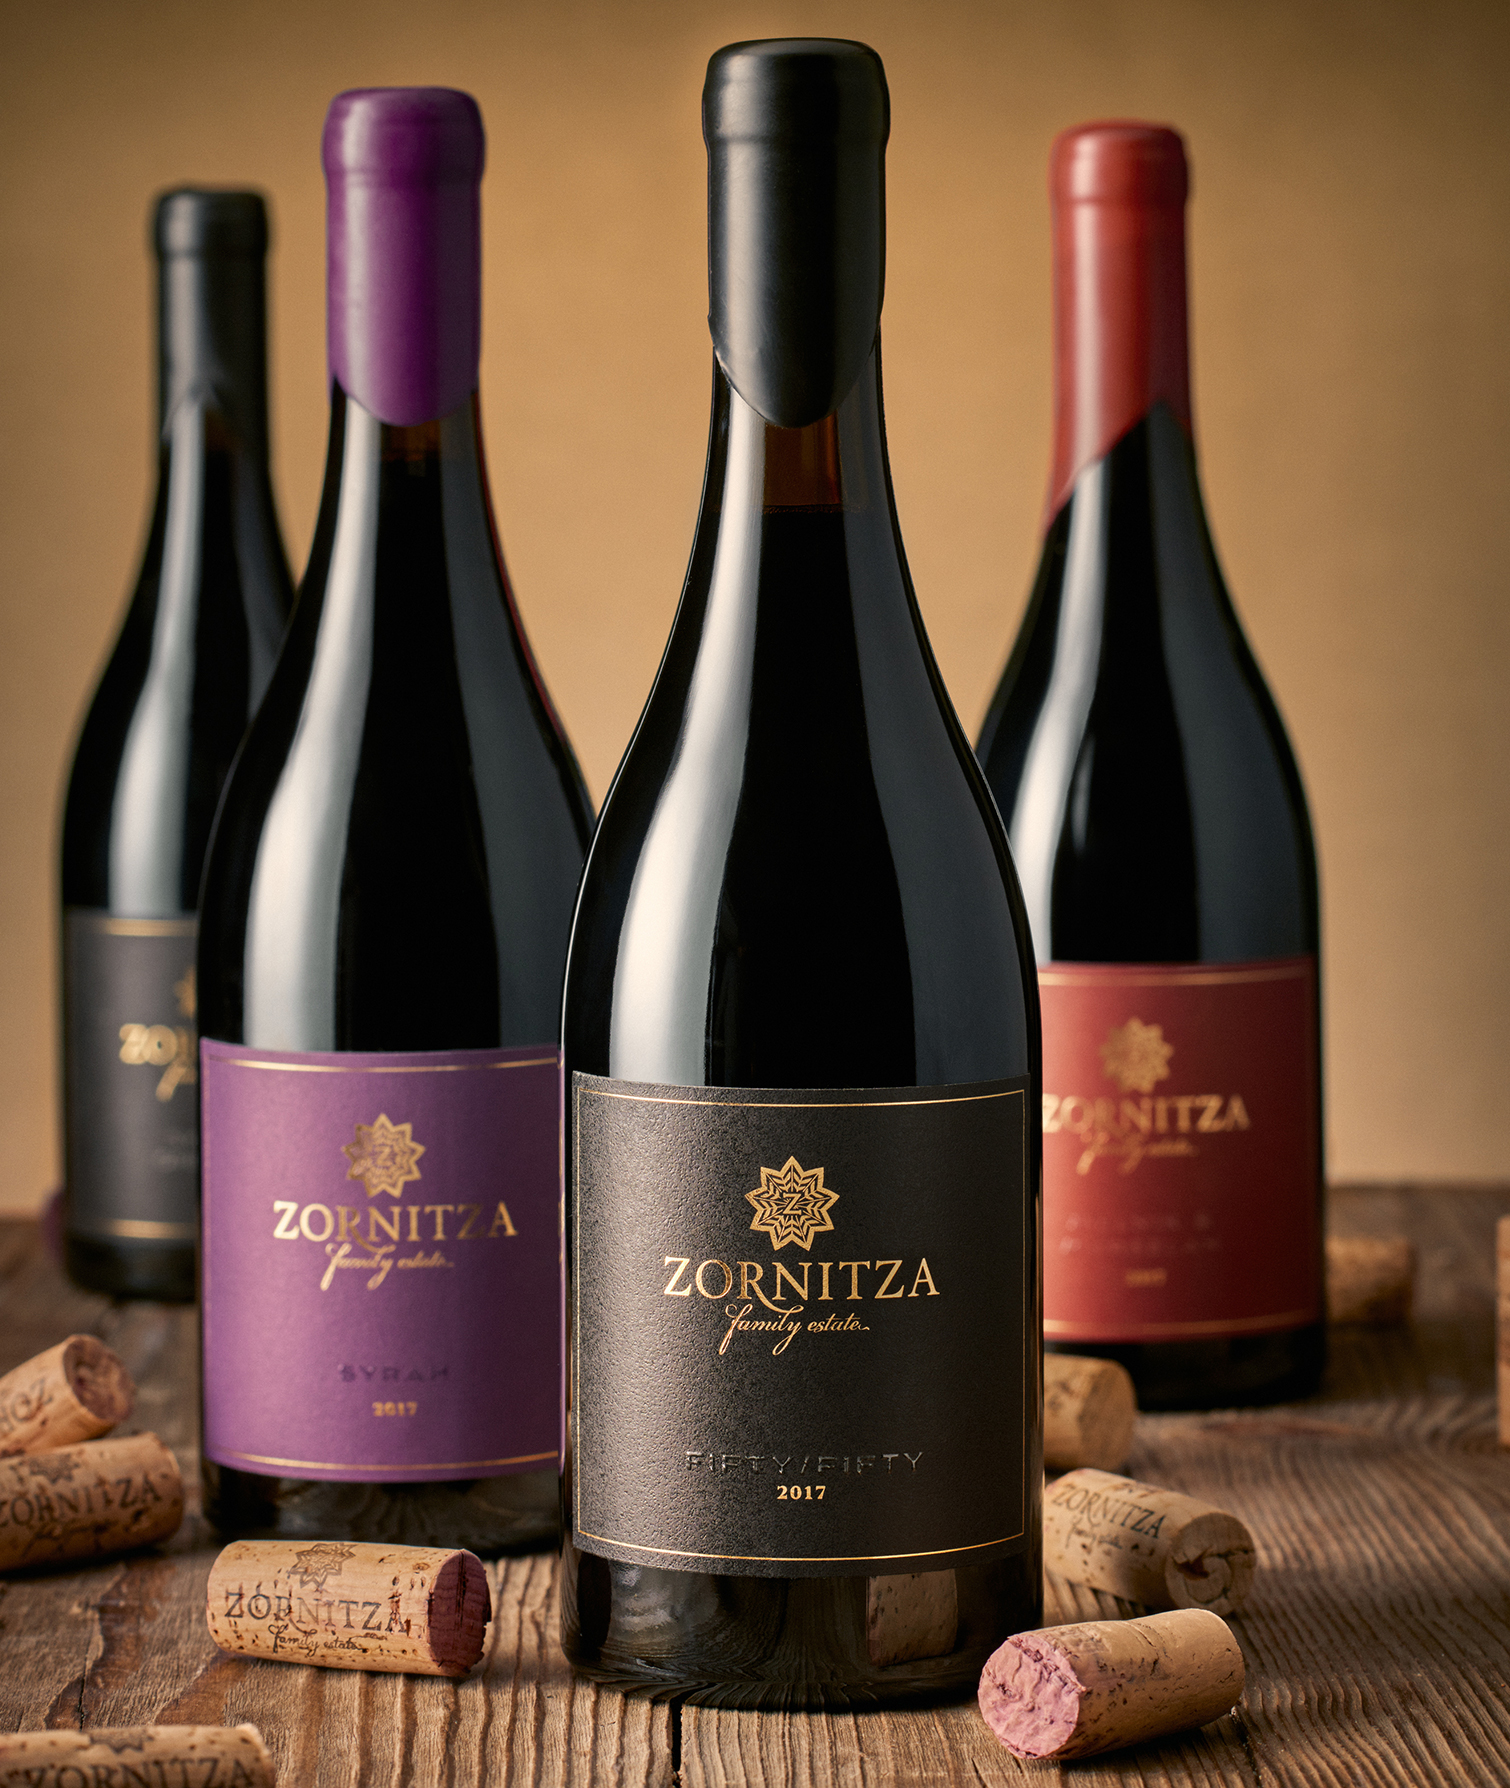 zornitza-wine-vertical-1.jpg